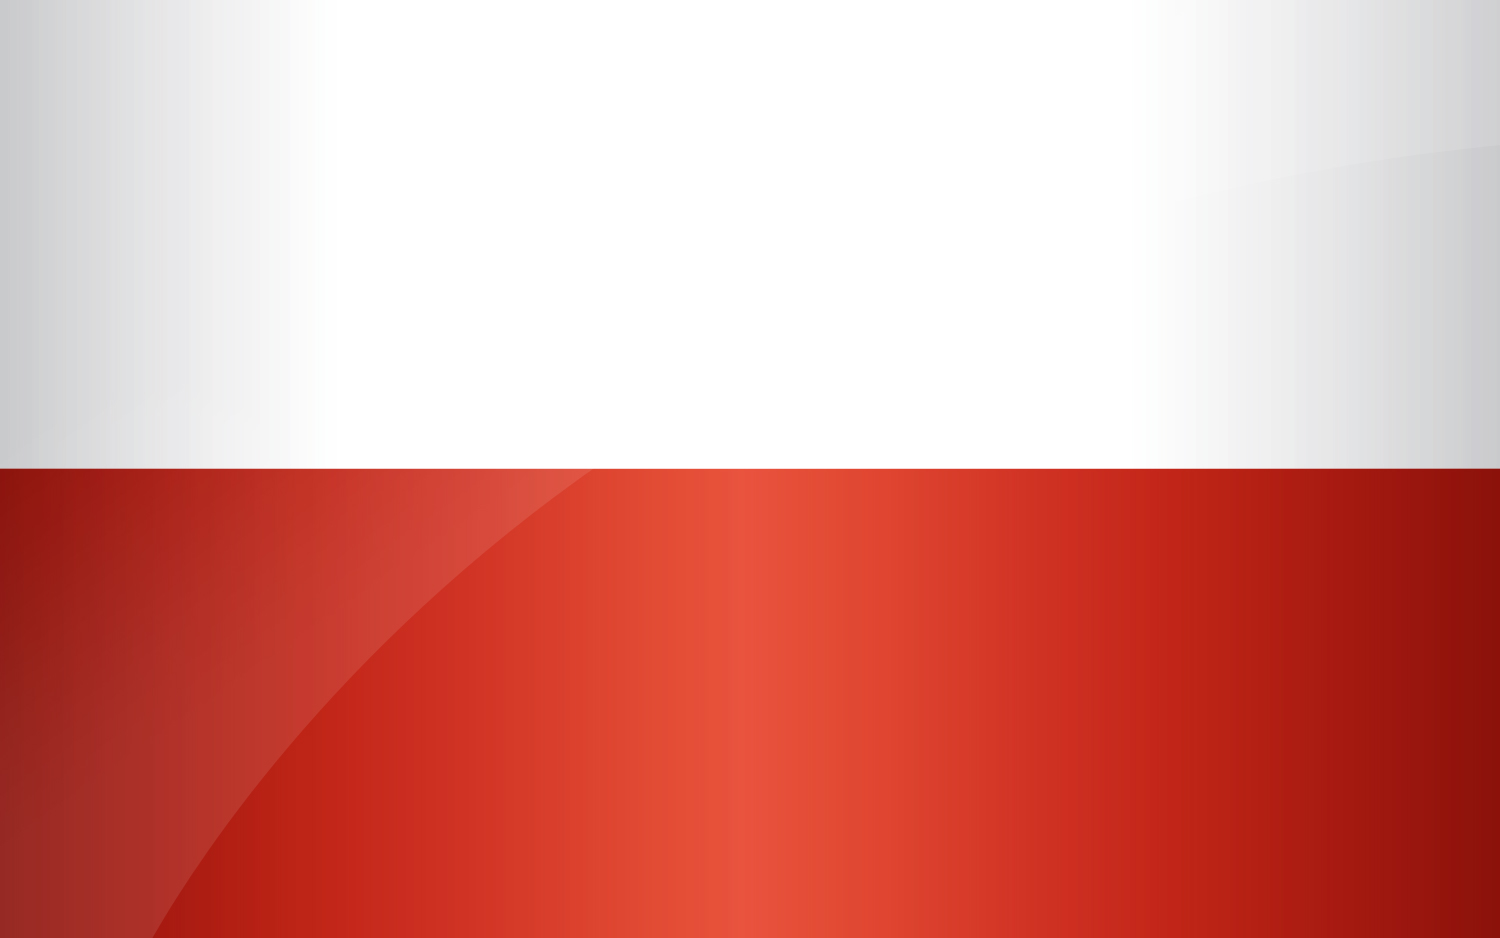 http://www.all-flags-world.com/country-flag/Poland/flag-poland-XL.jpg?850